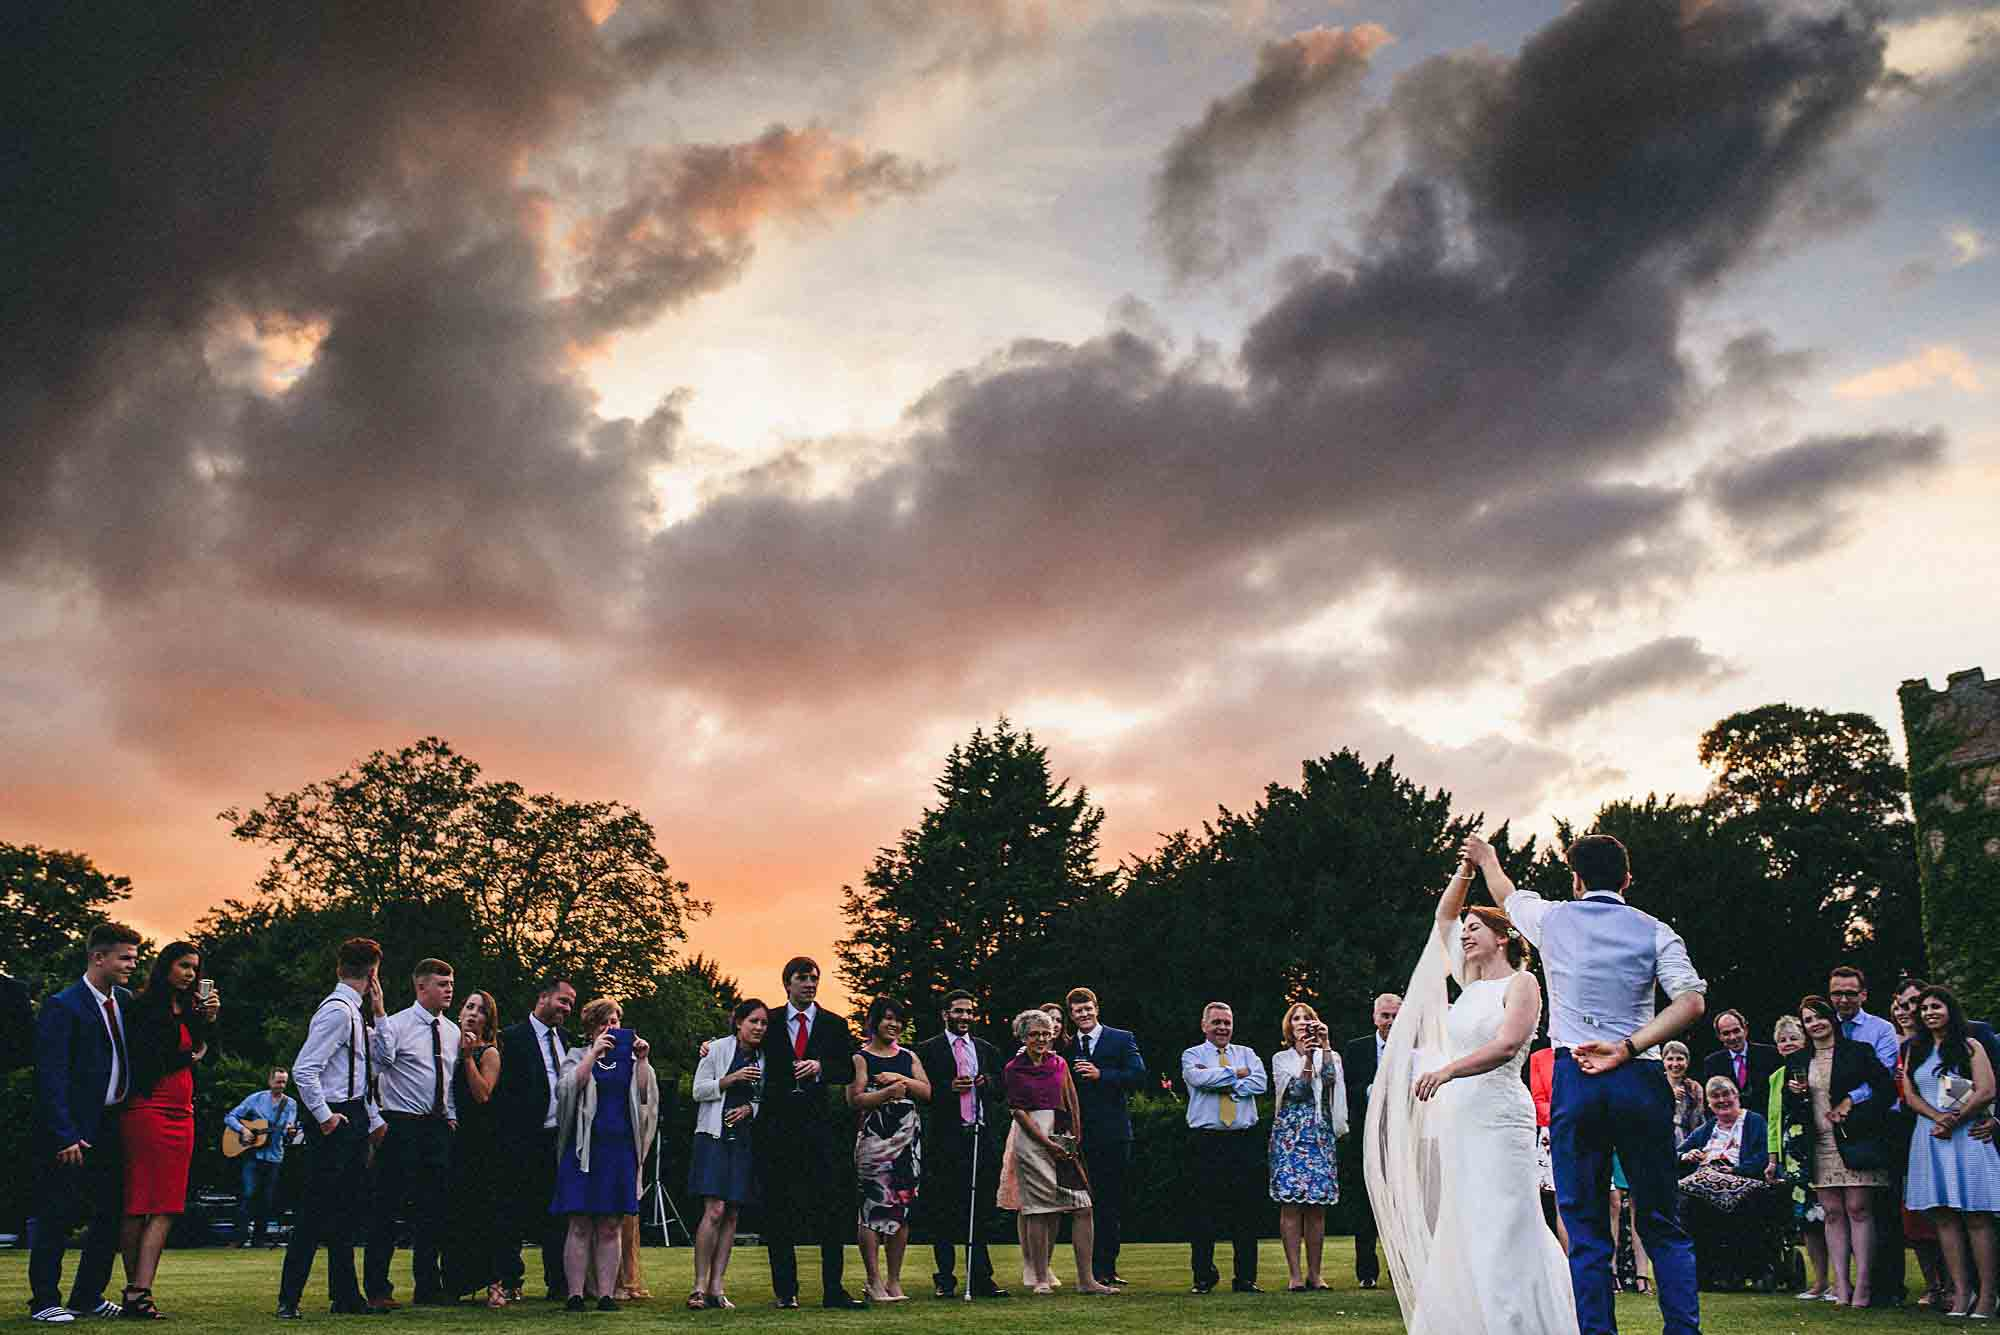 Narborough Hall Gardens wedding photography 46 Completed